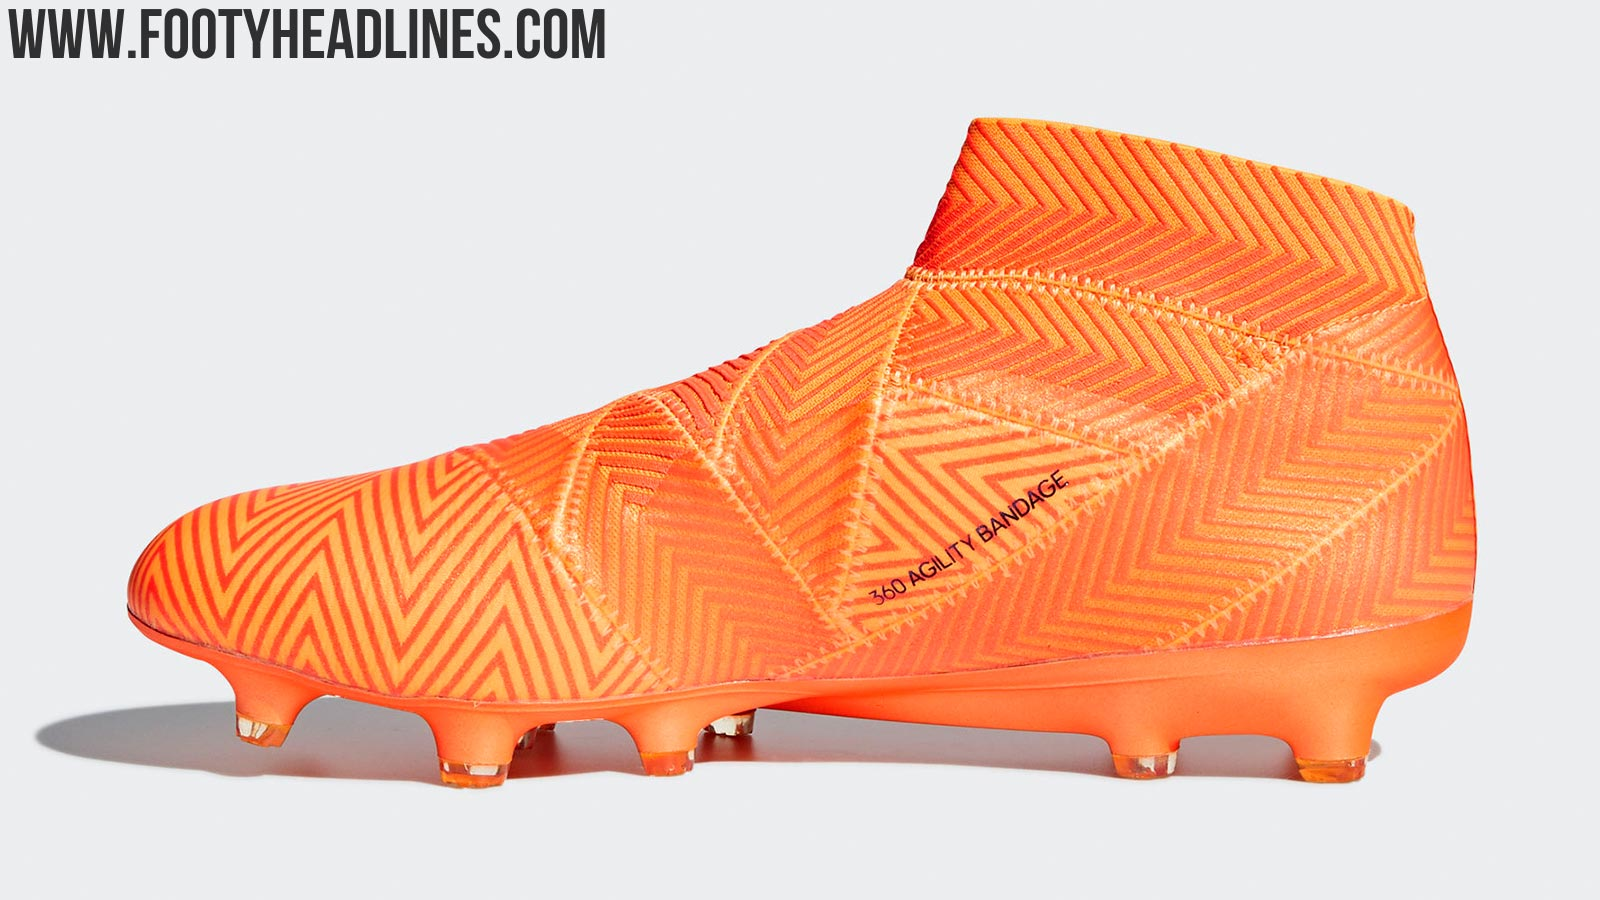 2f099e209 The second generation of the Adidas Nemeziz football boot will be launched  ahead of the 2018 World Cup. It's once again available as laceless and  laced ...